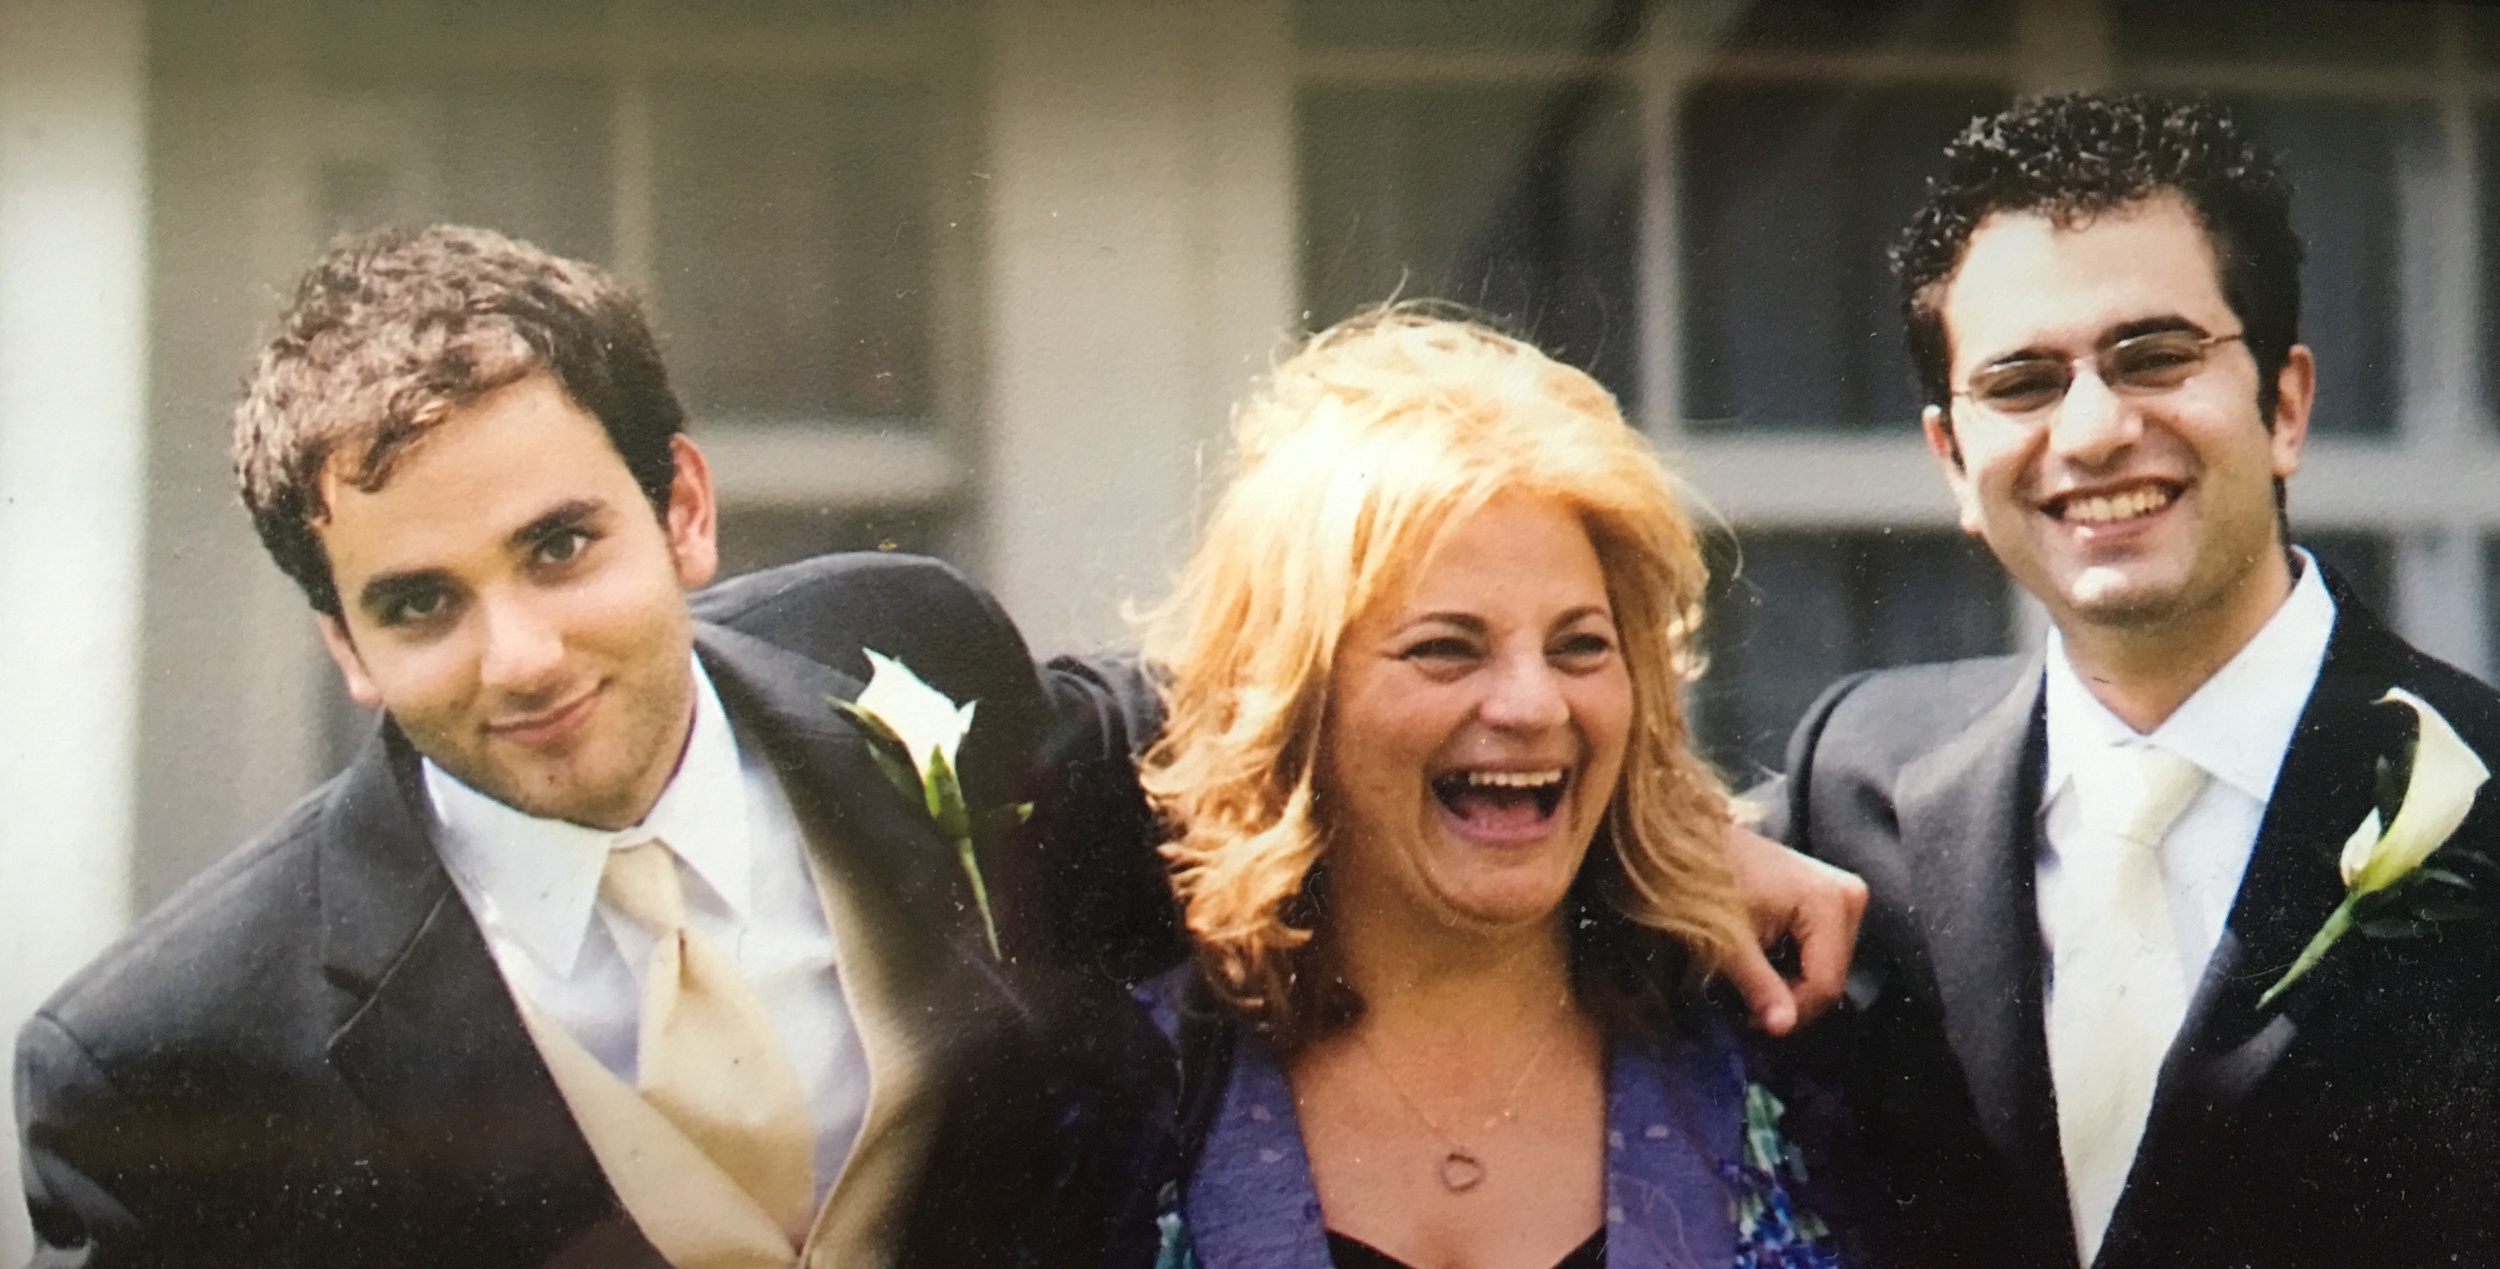 Karen and her two sons, David and Steven.